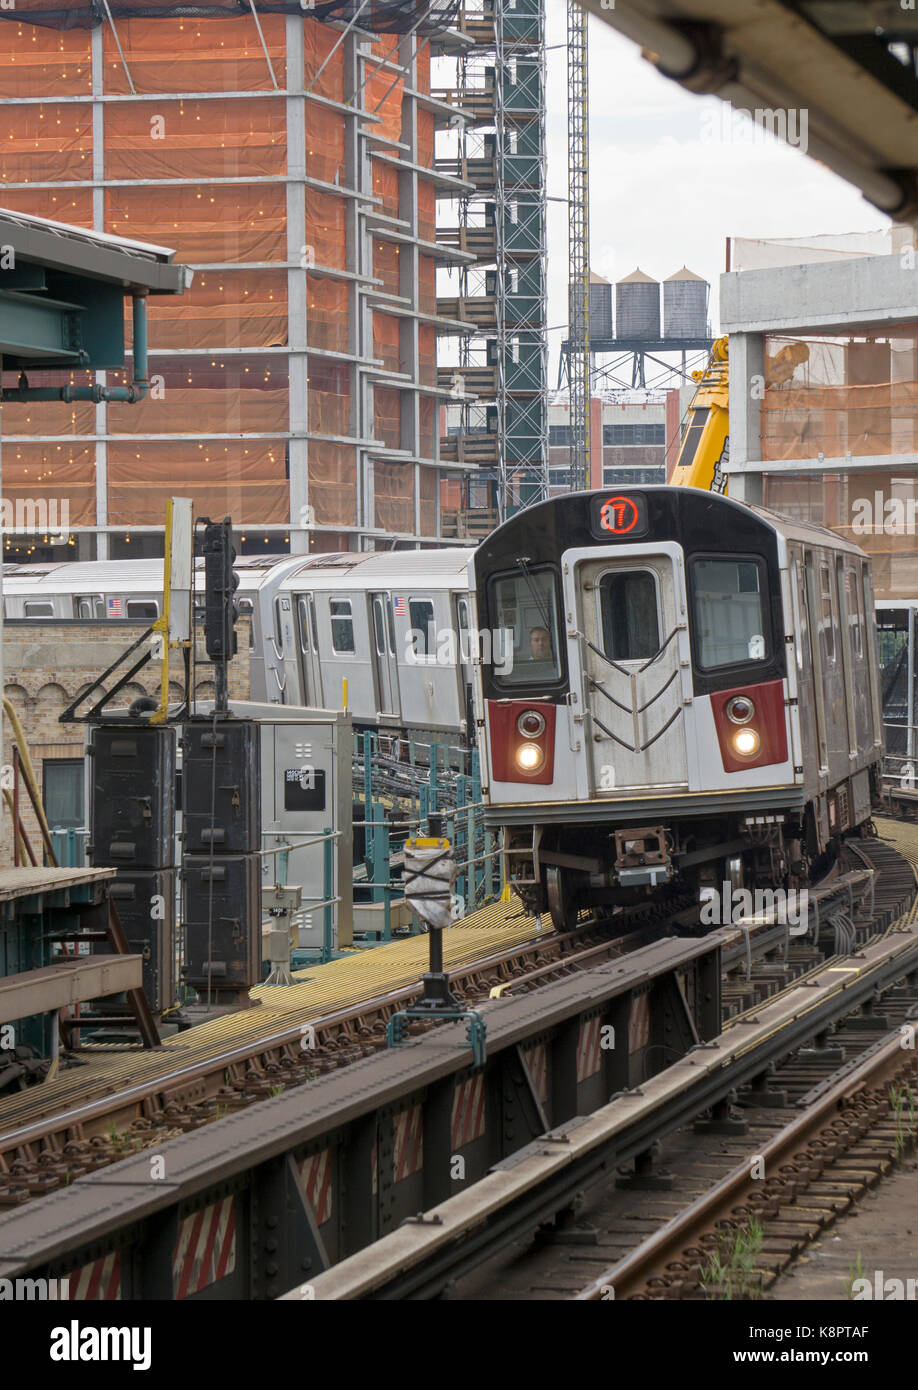 The Queens bound #7 elevated subway train pulling into the 45th Road-Courthouse Square station in Long Island City - Stock Image